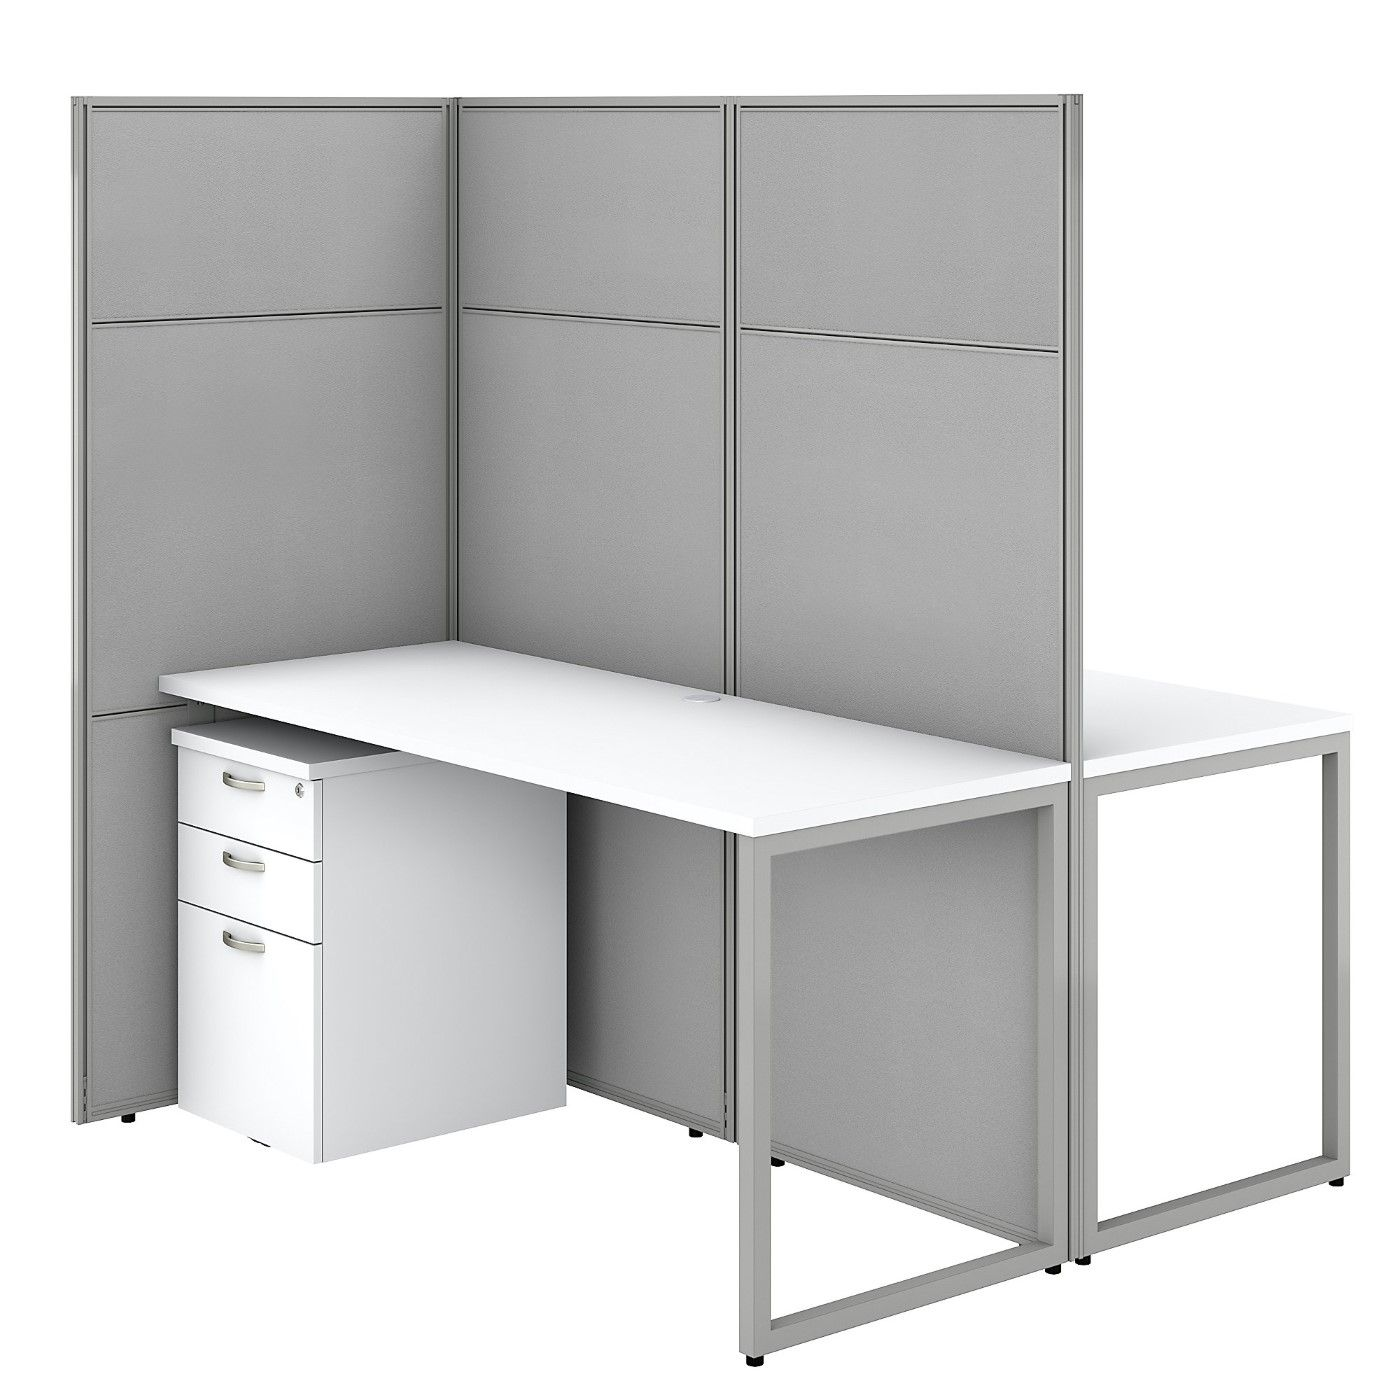 BUSH BUSINESS FURNITURE EASY OFFICE 60W 2 PERSON CUBICLE DESK WITH FILE CABINETS AND 66H PANELS. FREE SHIPPING SALE DEDUCT 10% MORE ENTER '10percent' IN COUPON CODE BOX WHILE CHECKING OUT. ENDS 5-31-20.